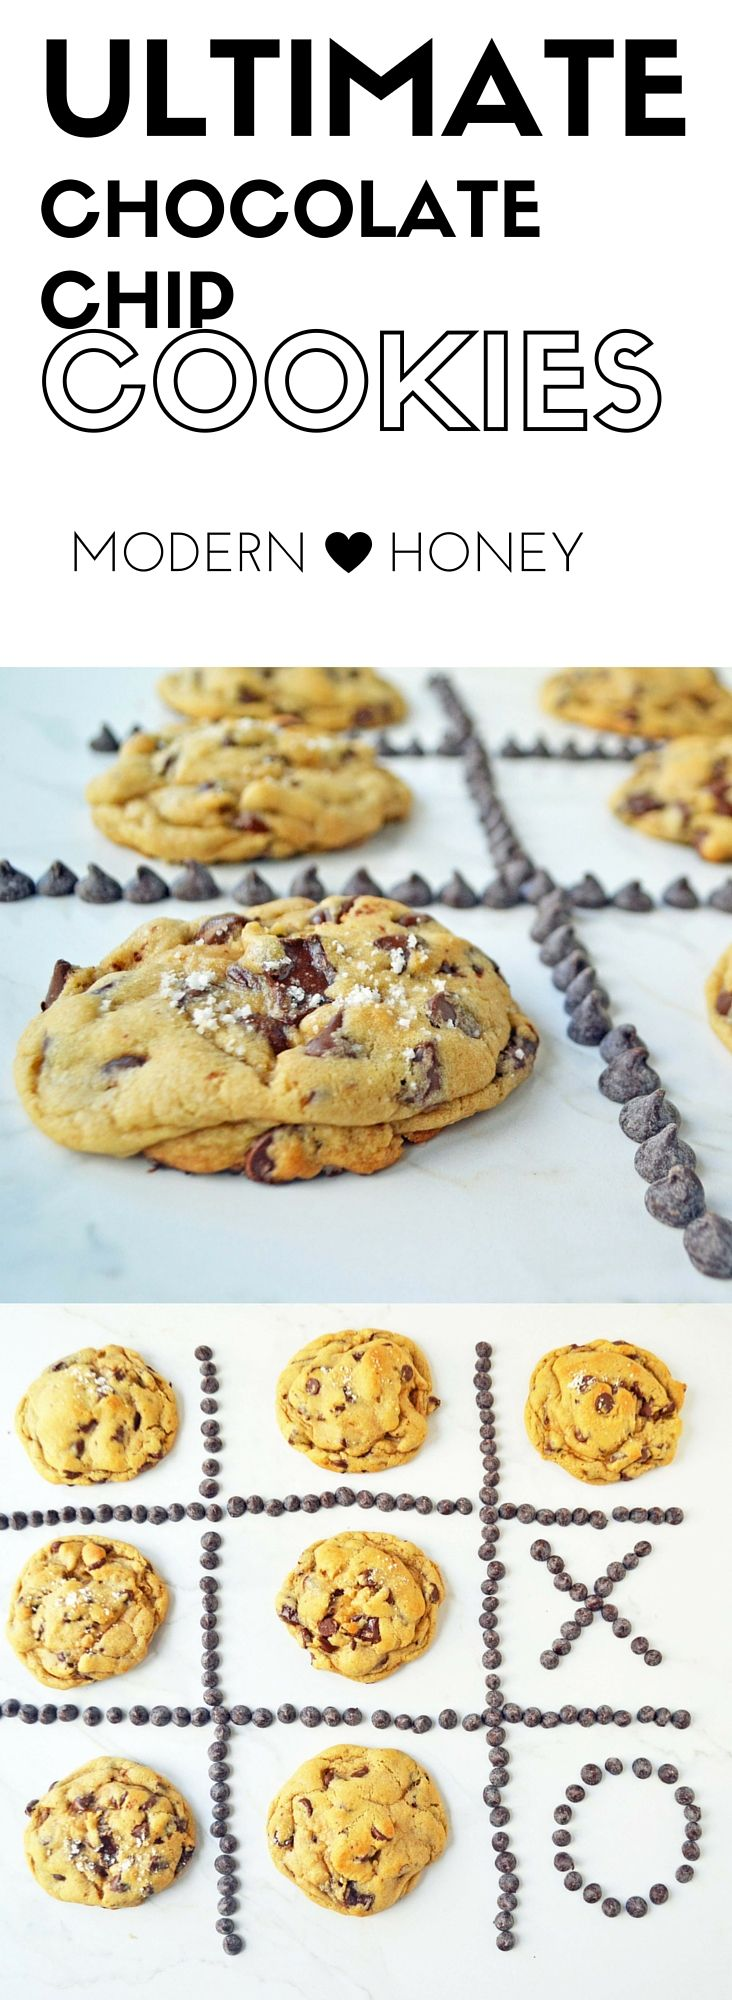 Ultimate Chocolate Chip Cookies with tips on how to make the perfect chocolate chip cookies. Top the cookies with sea salt and you have the perfect cookie.